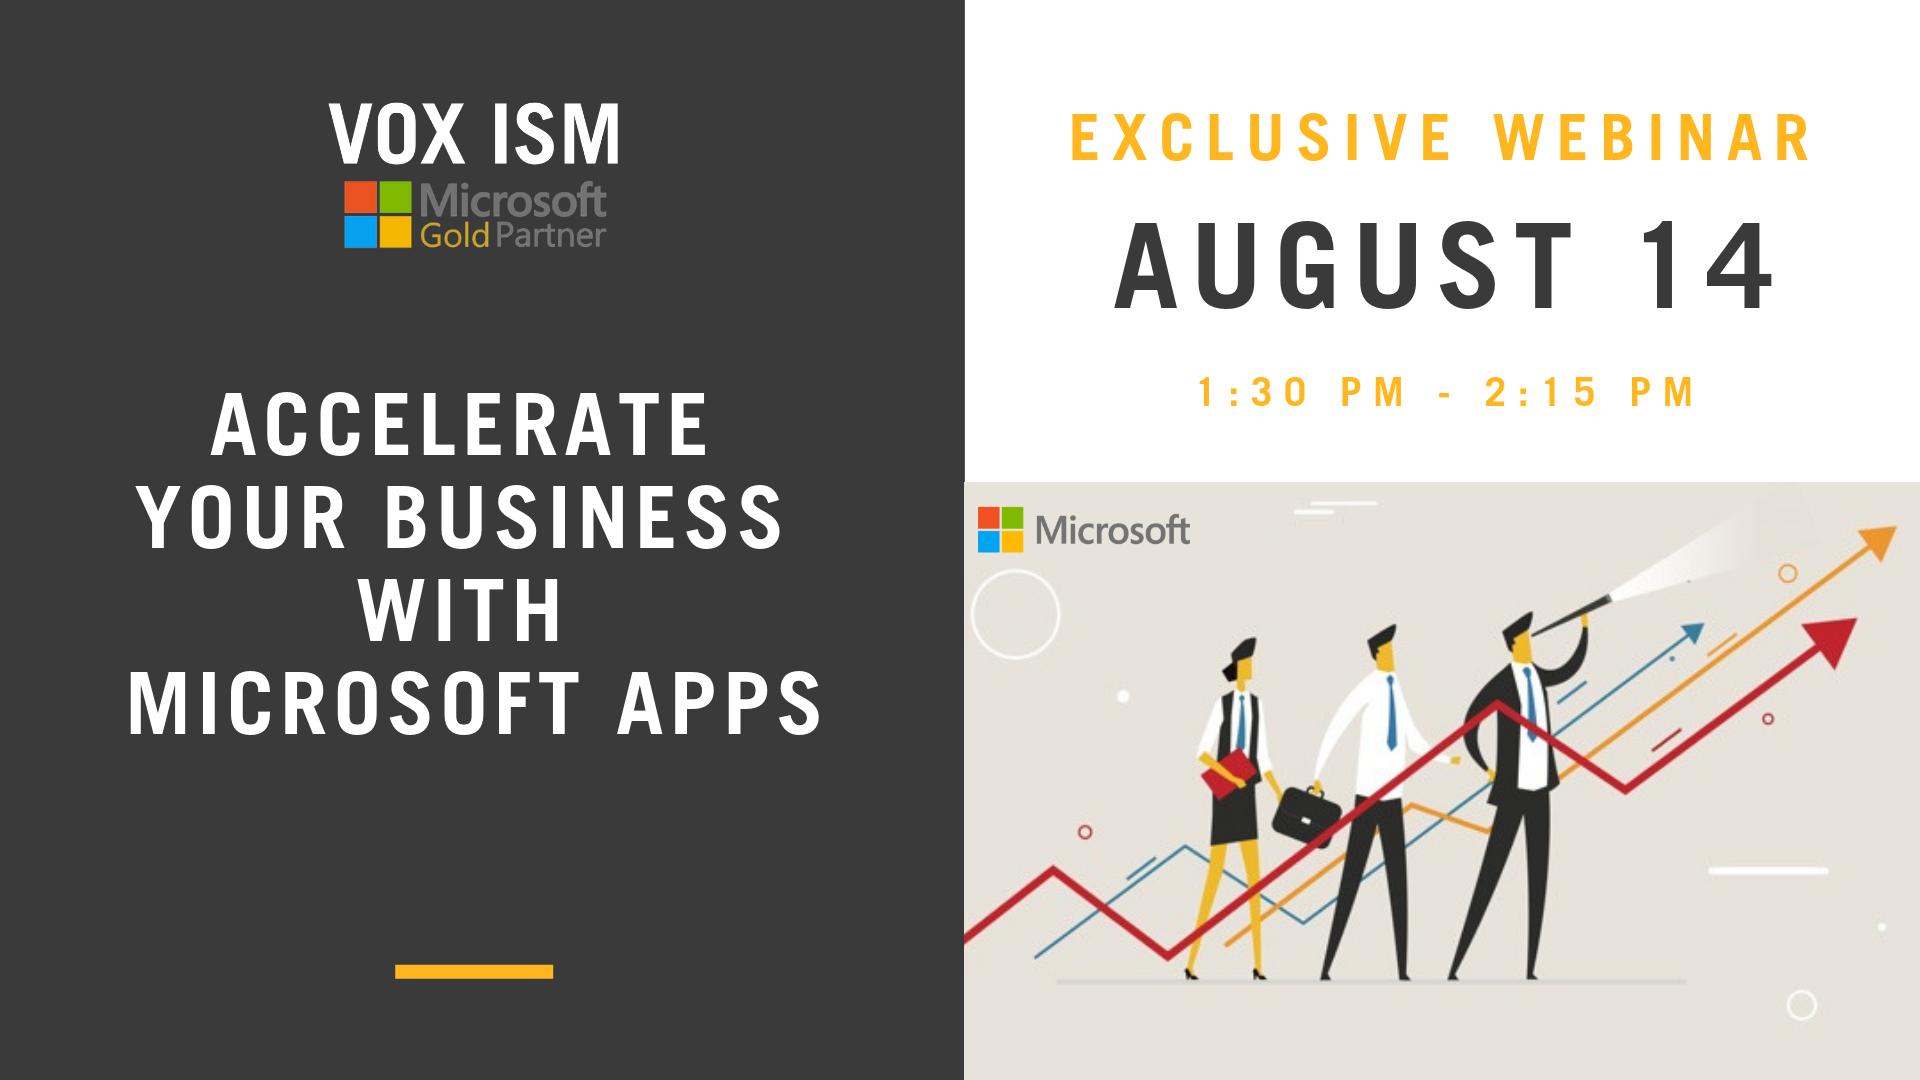 Accelerate Your Business with Microsoft Apps - August 14 - Webinar - VOX ISM